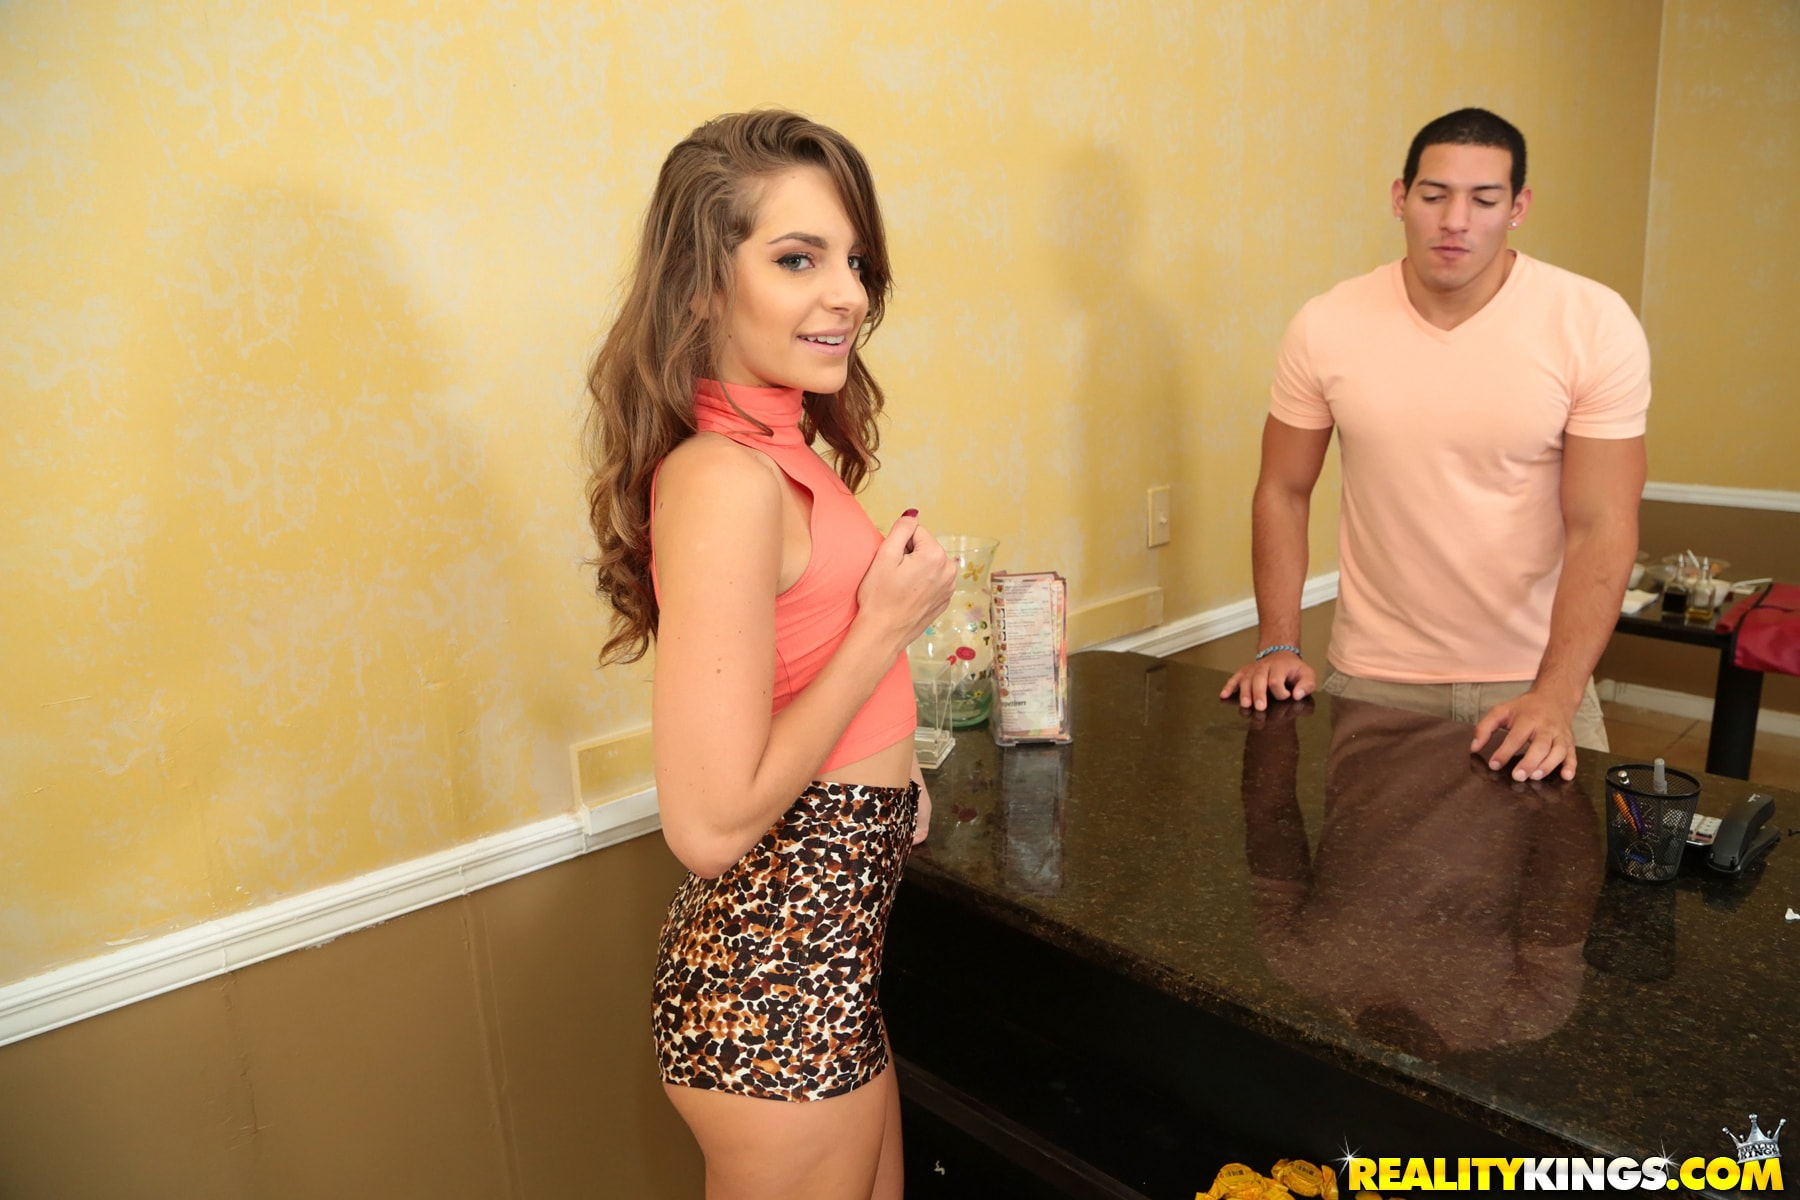 Reality Kings 'Grab that ass' starring Kelly Greene (photo 66)